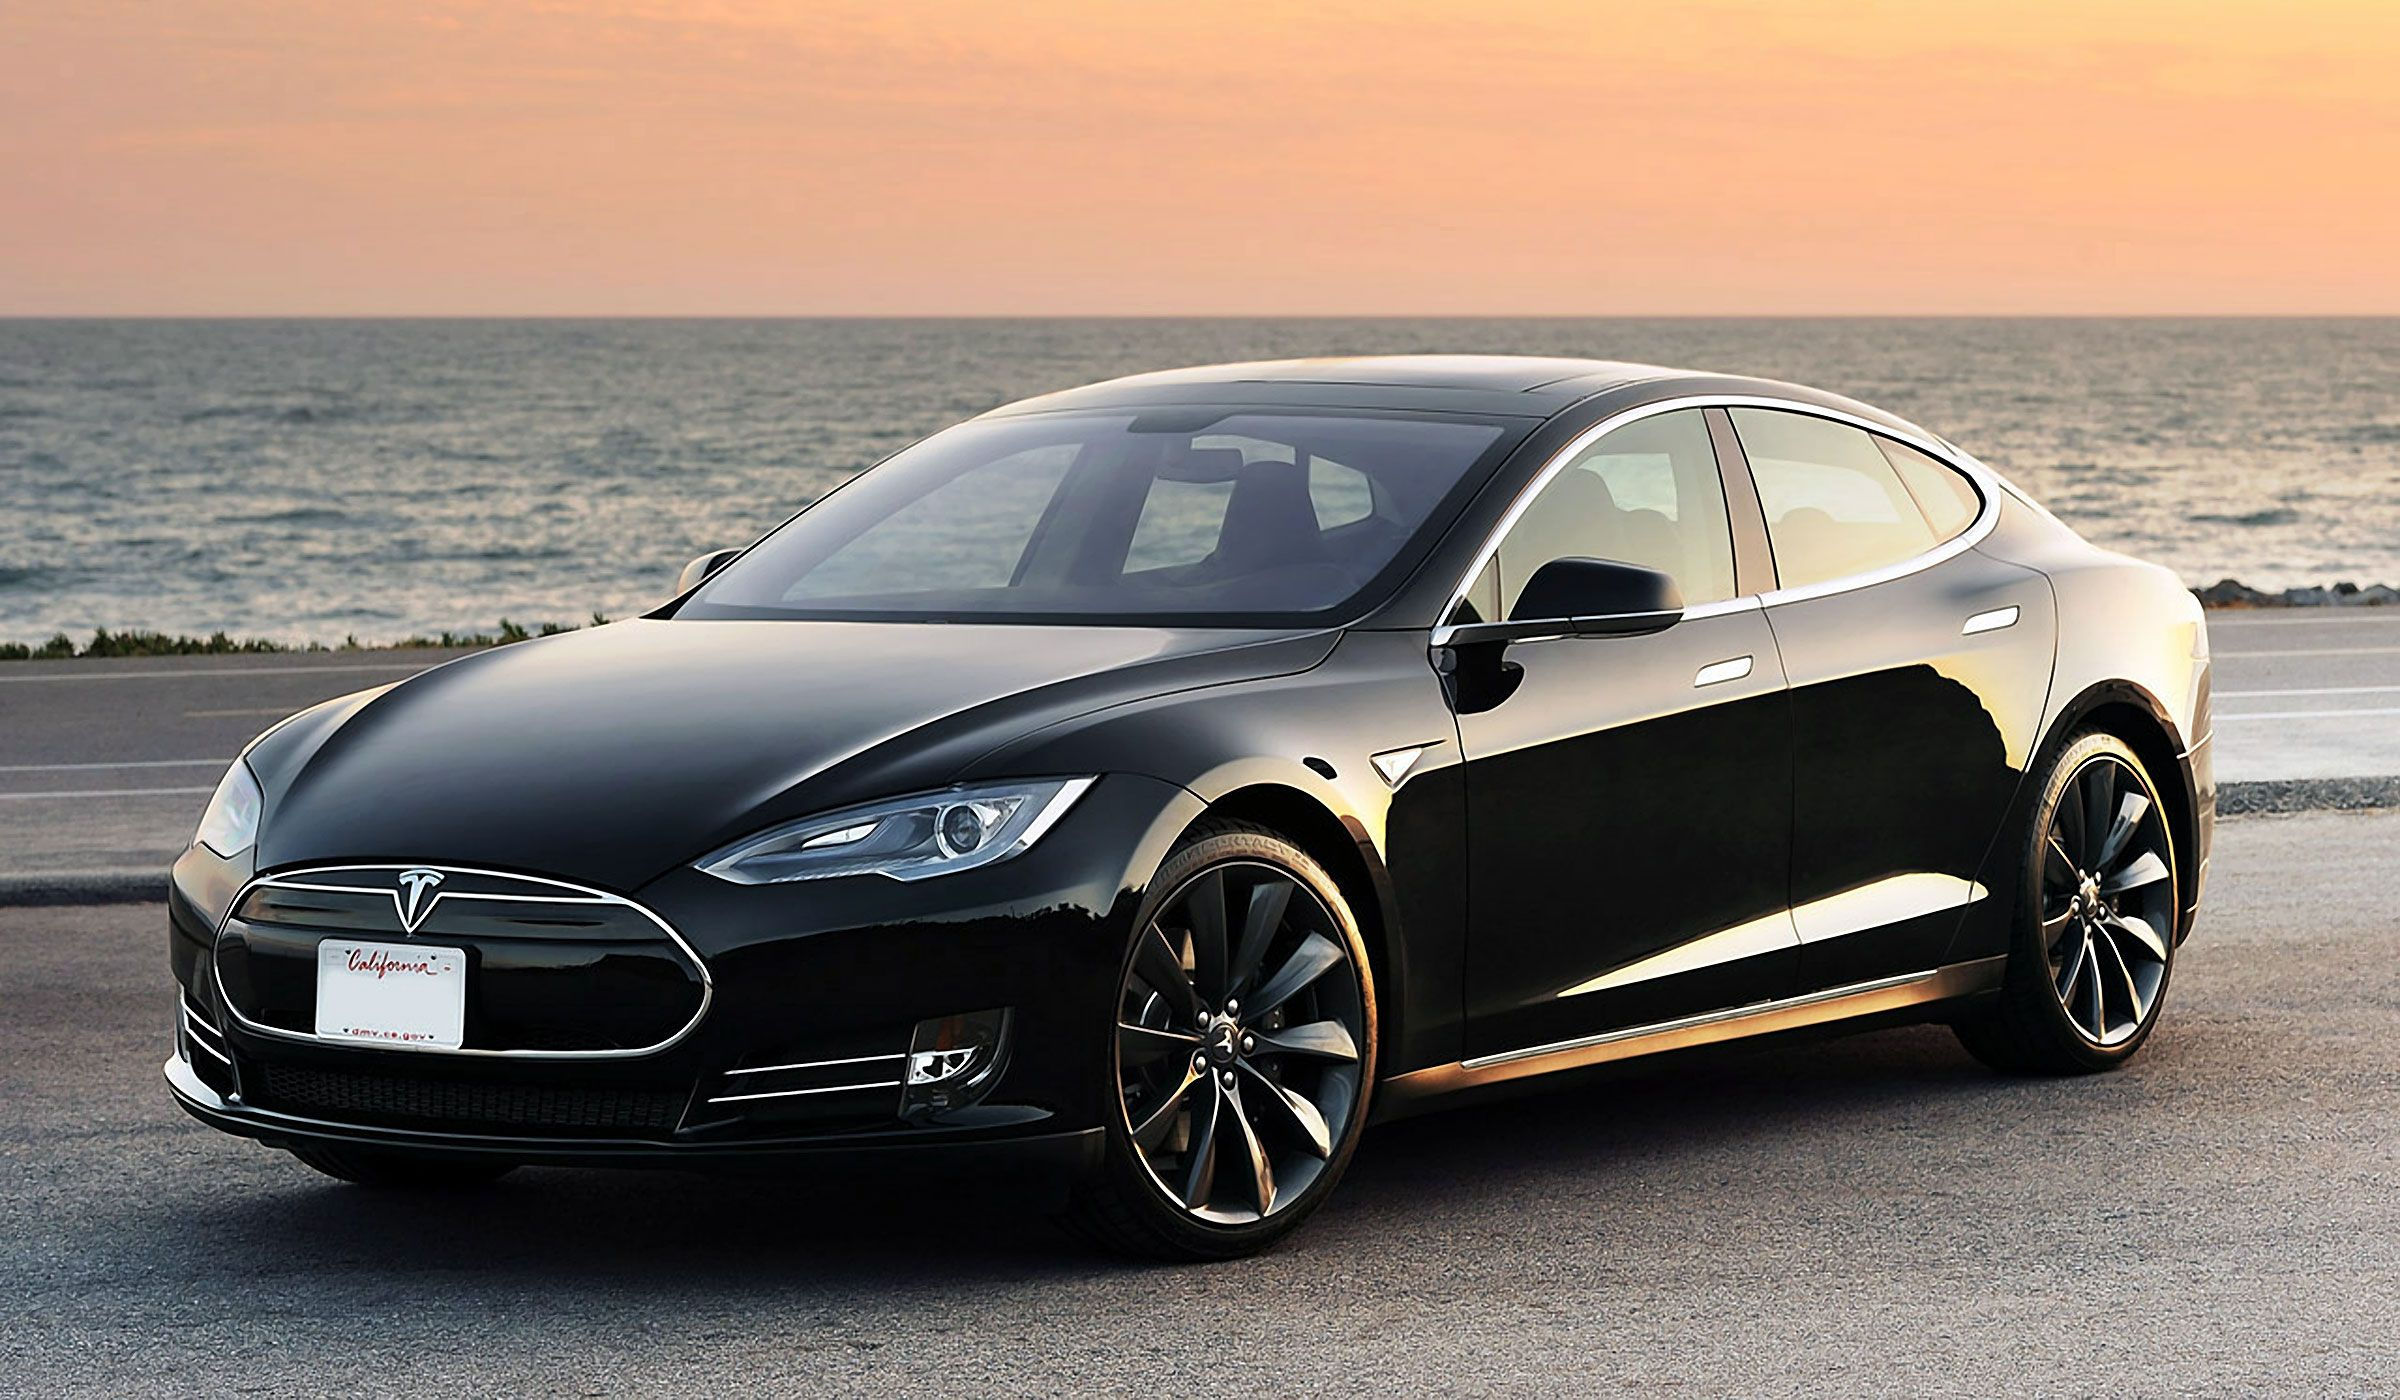 Did Tesla Model S Cheat On Total Horse Everyone Has Heard About How Awesome And Ful It Is With Its 691 Hp